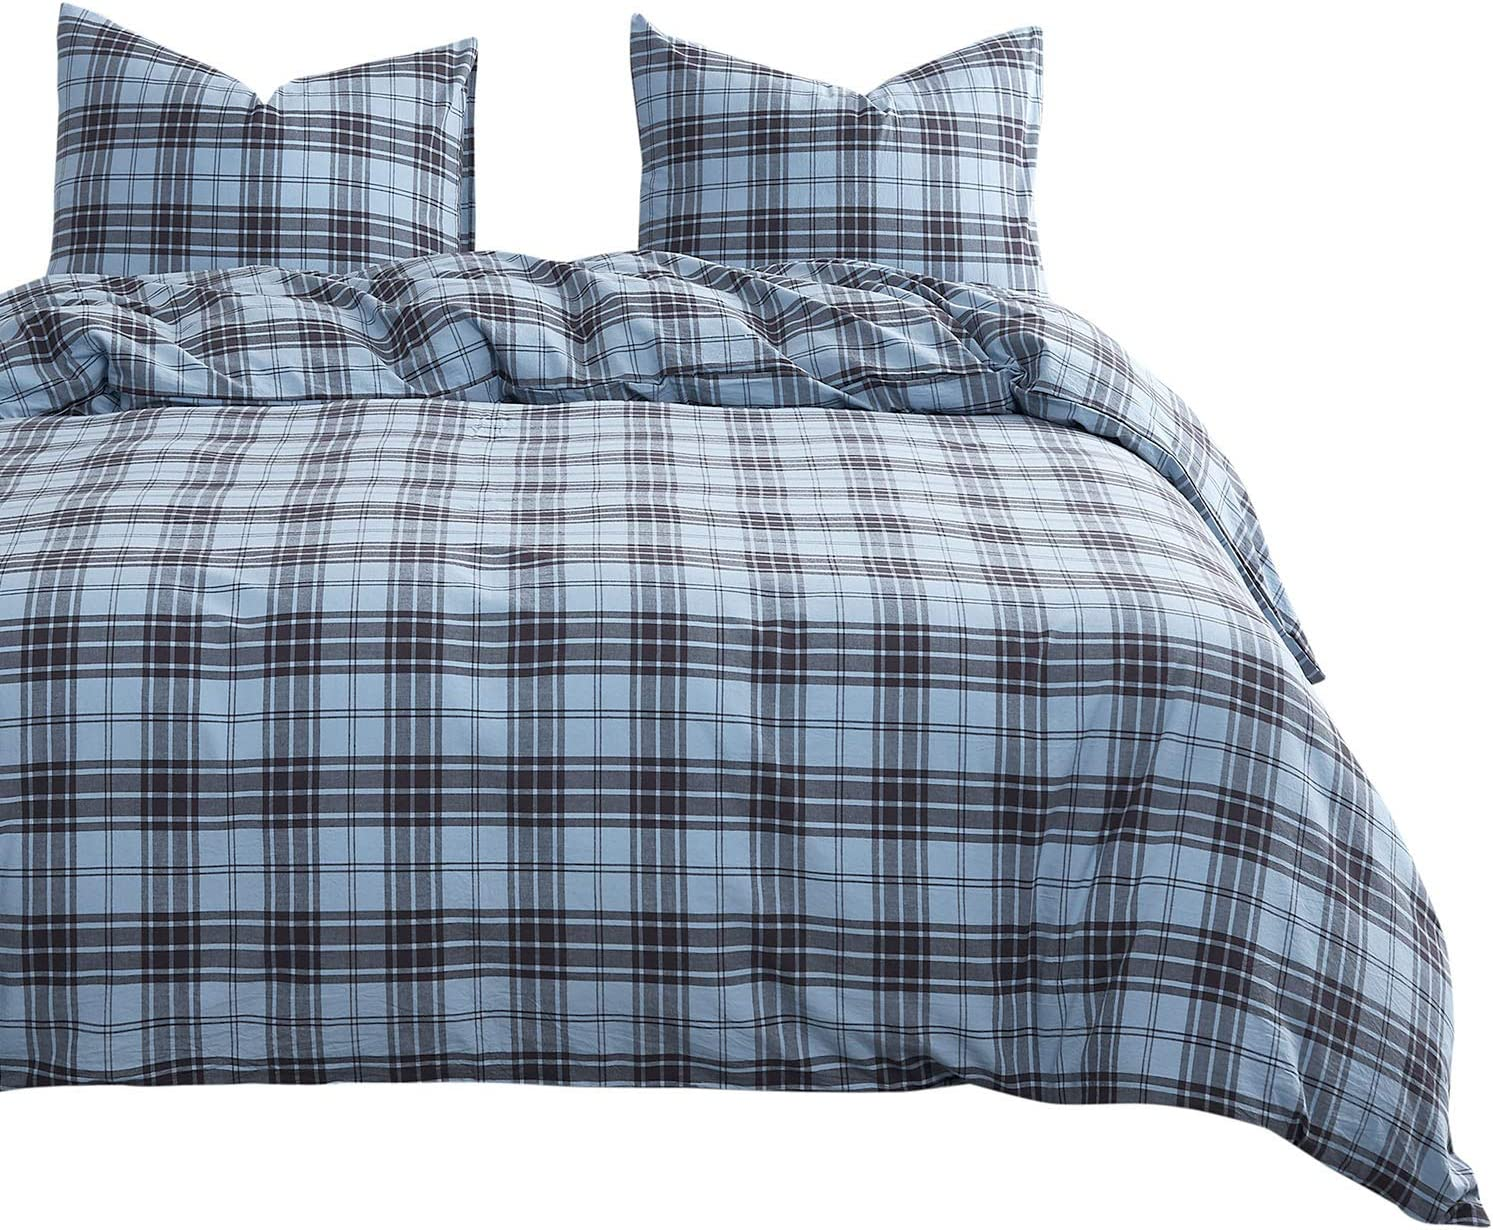 Wake In Cloud - Scottish Plaid Duvet Cover Set, 100% Washed Cotton Bedding, Tartan Check Geometric Pattern in Black and Blue, with Zipper Closure (3pcs, Queen Size)